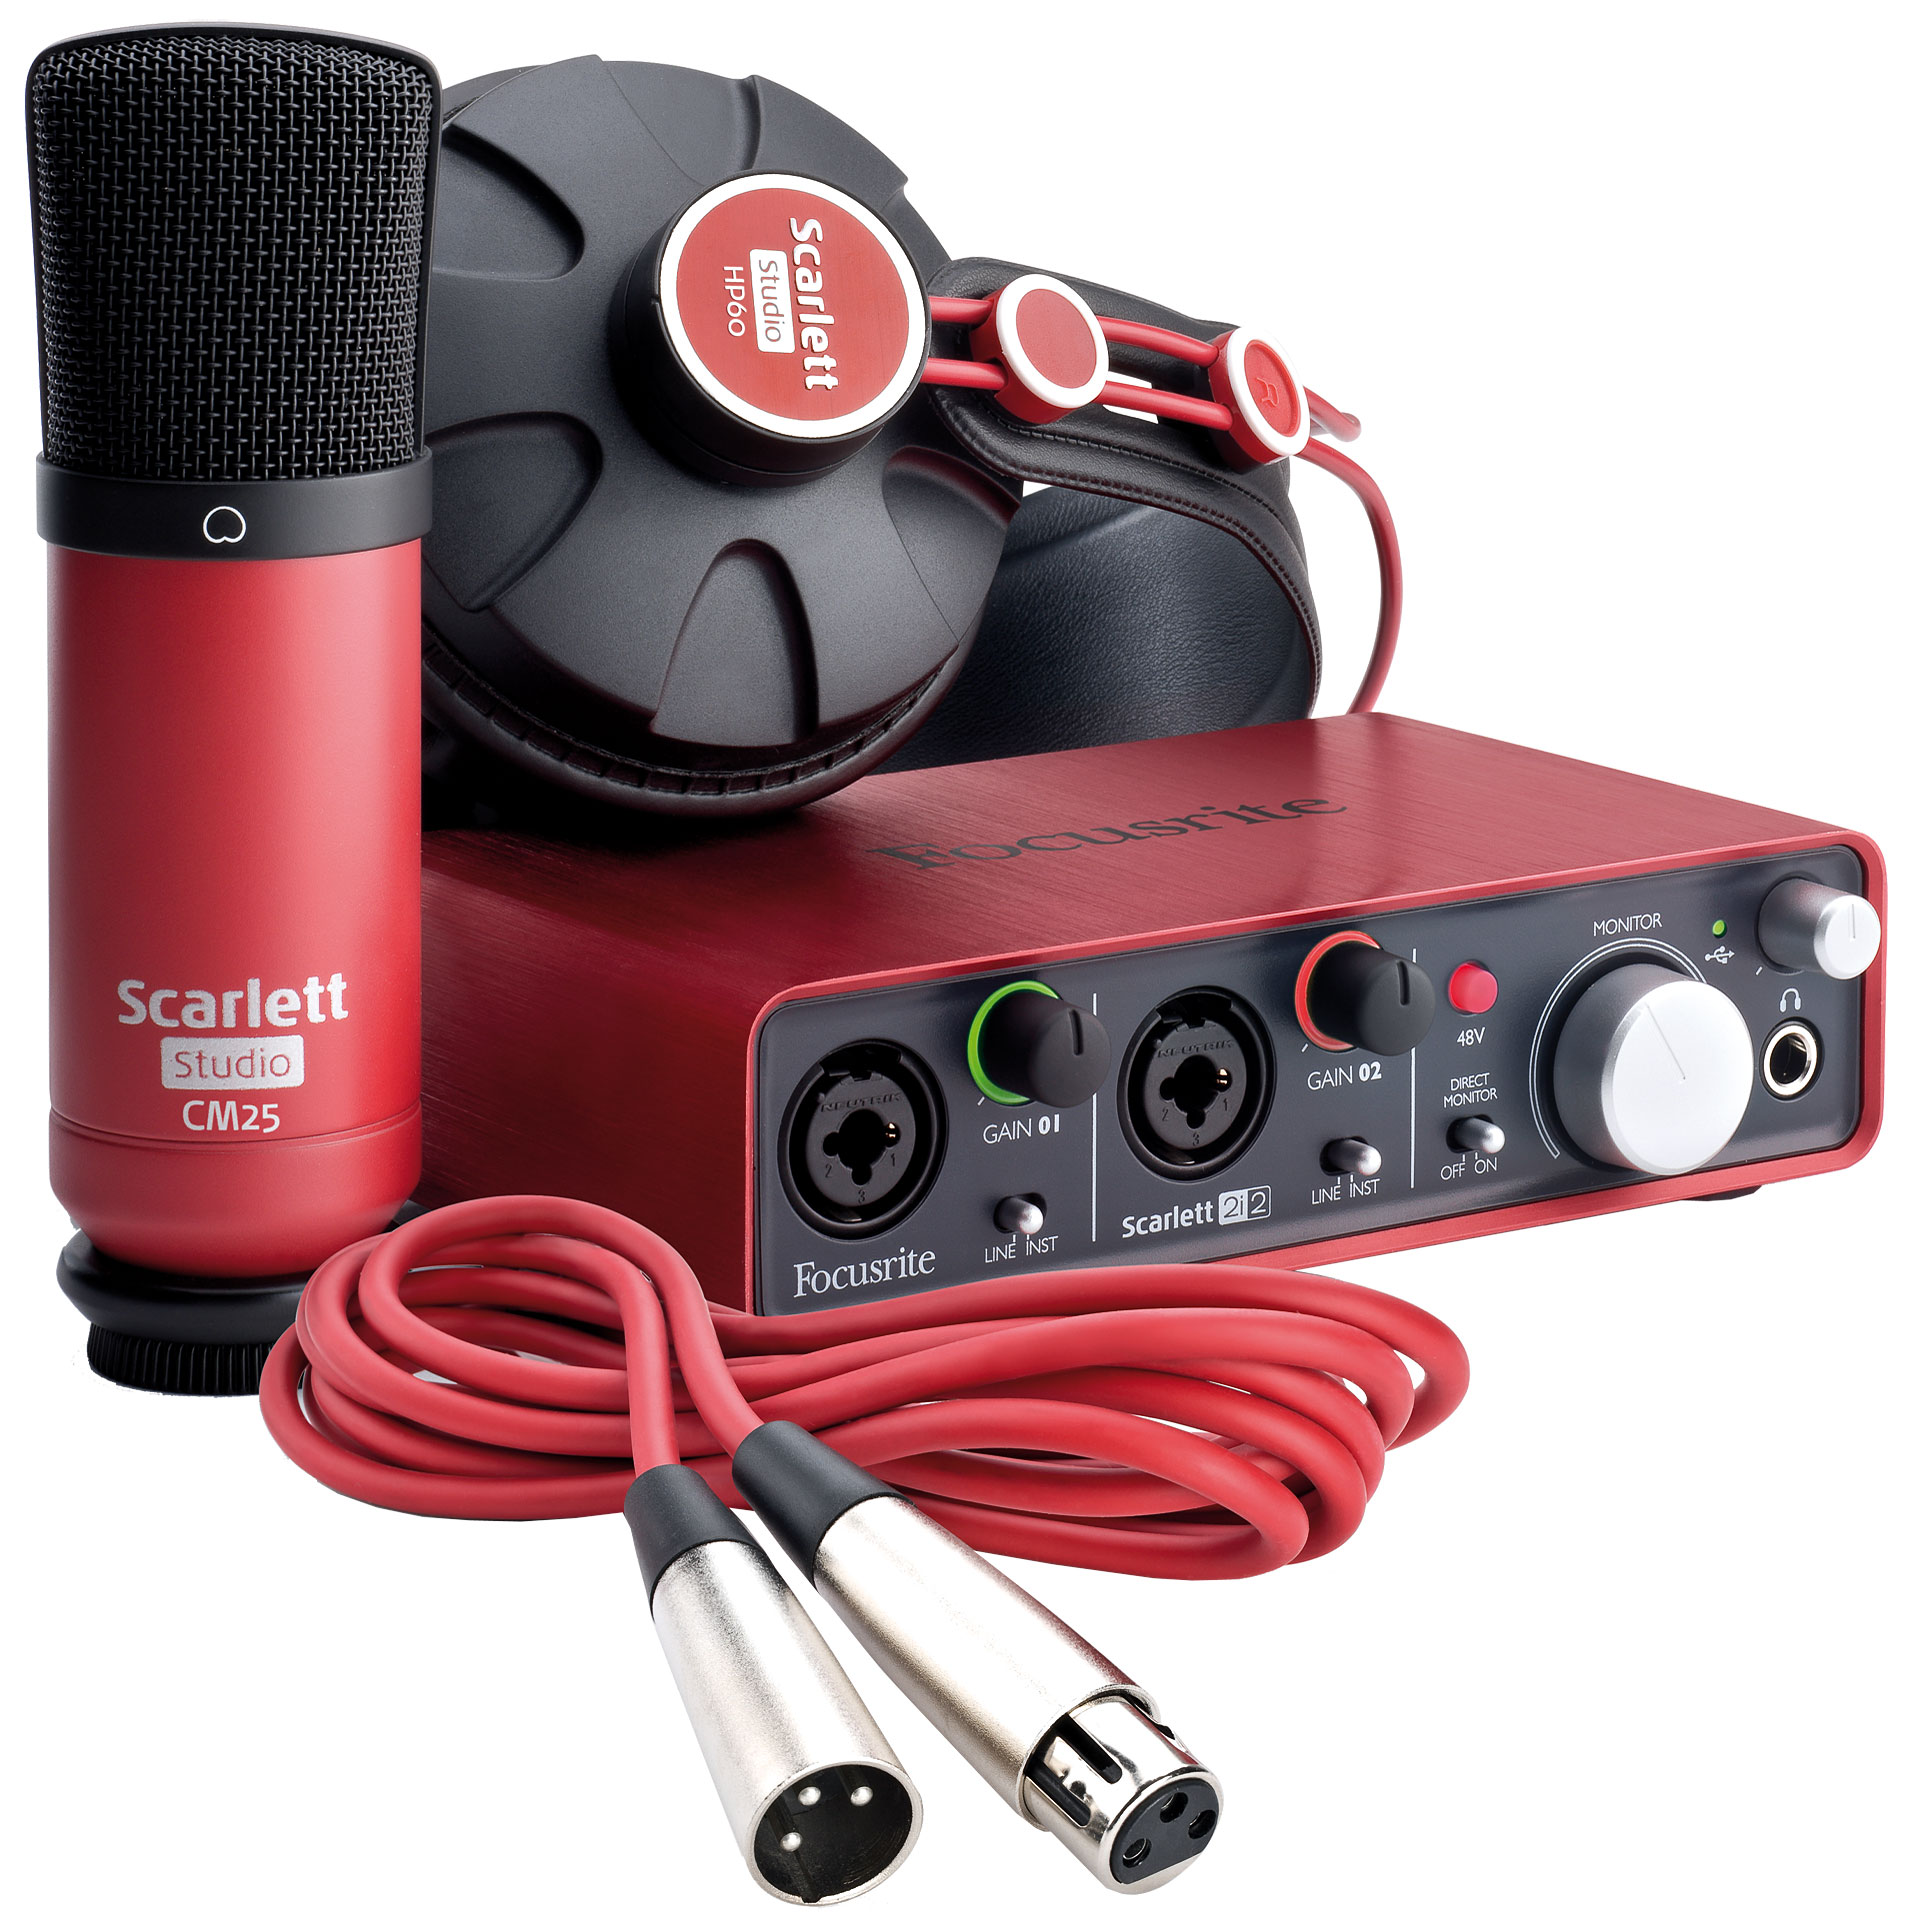 focusrite scarlett studio carte son interface audio. Black Bedroom Furniture Sets. Home Design Ideas